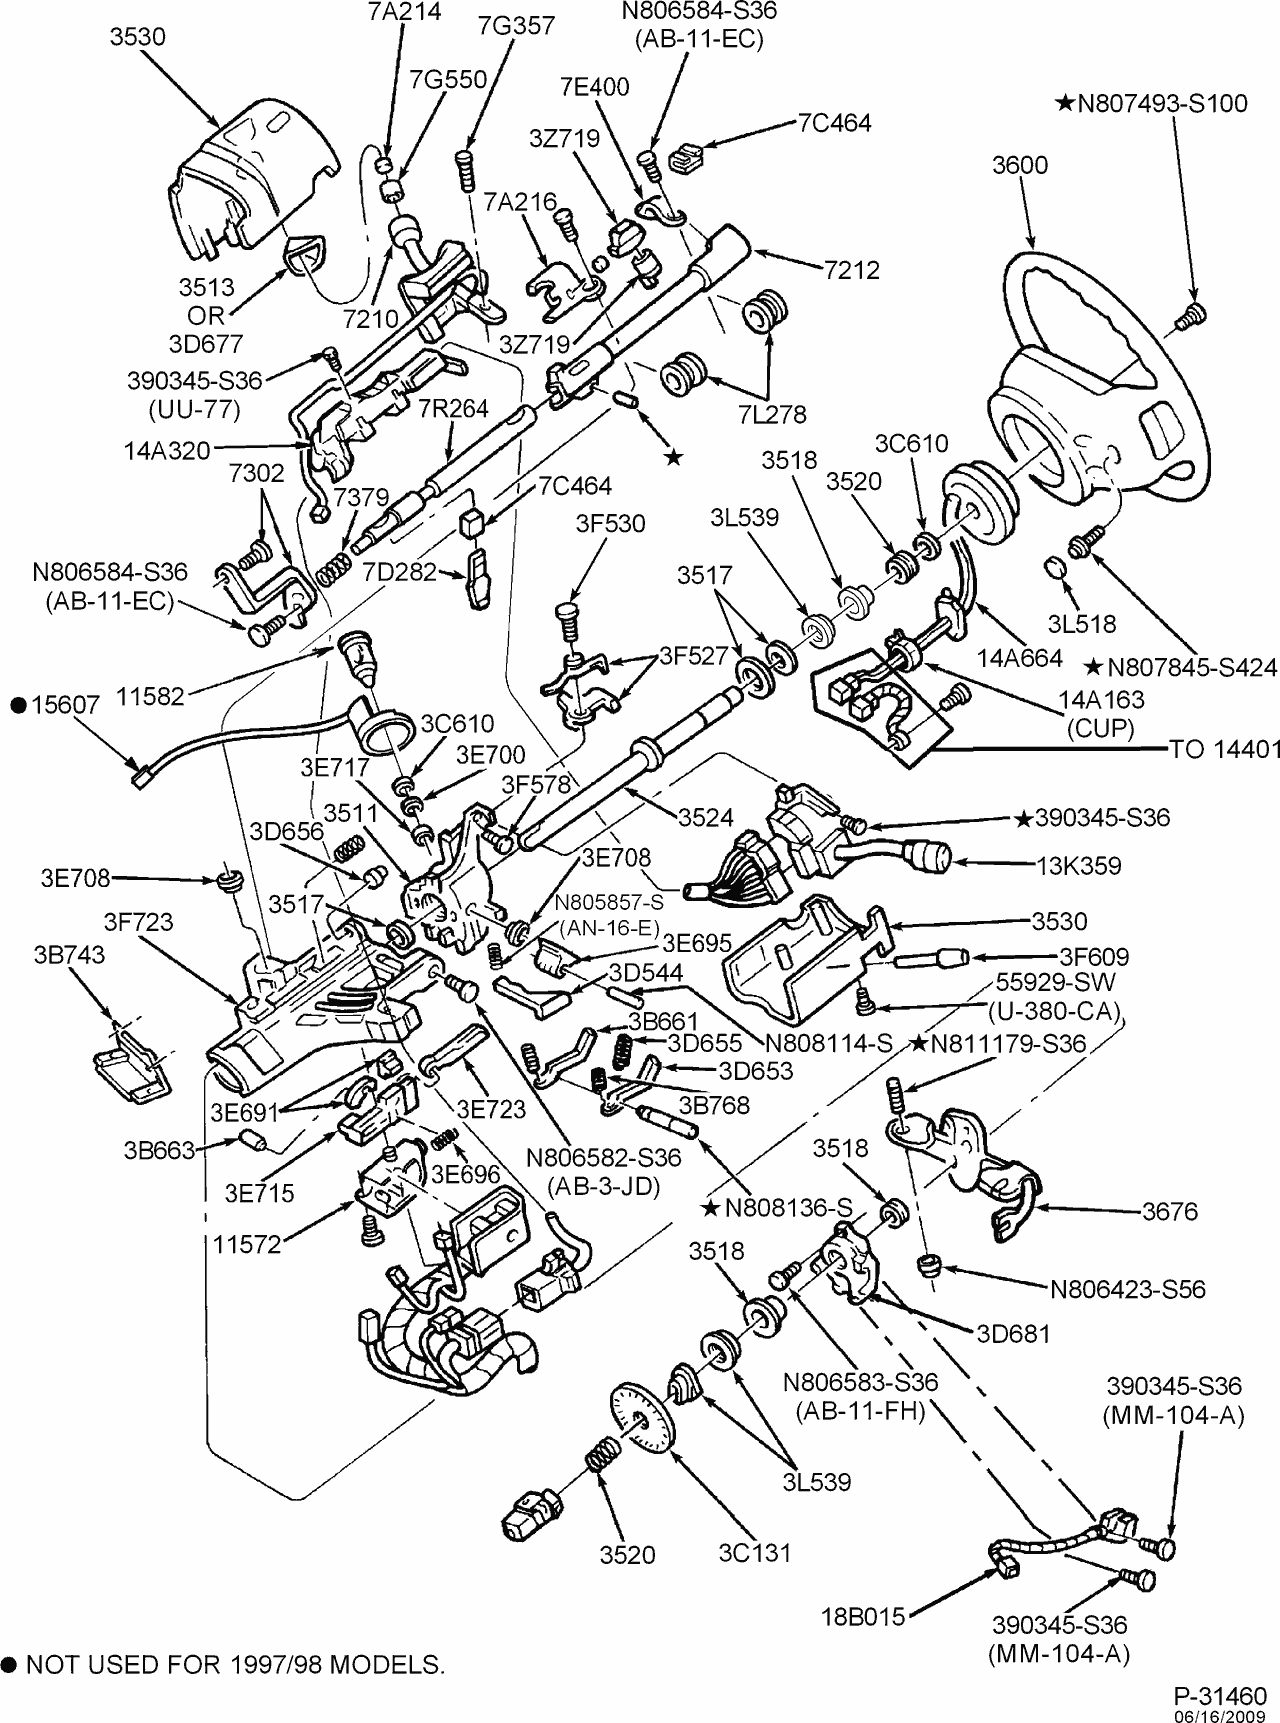 Attachment together with Solo Blog July together with Fb as well Hqdefault also Img. on 2002 ford escape fuse diagram